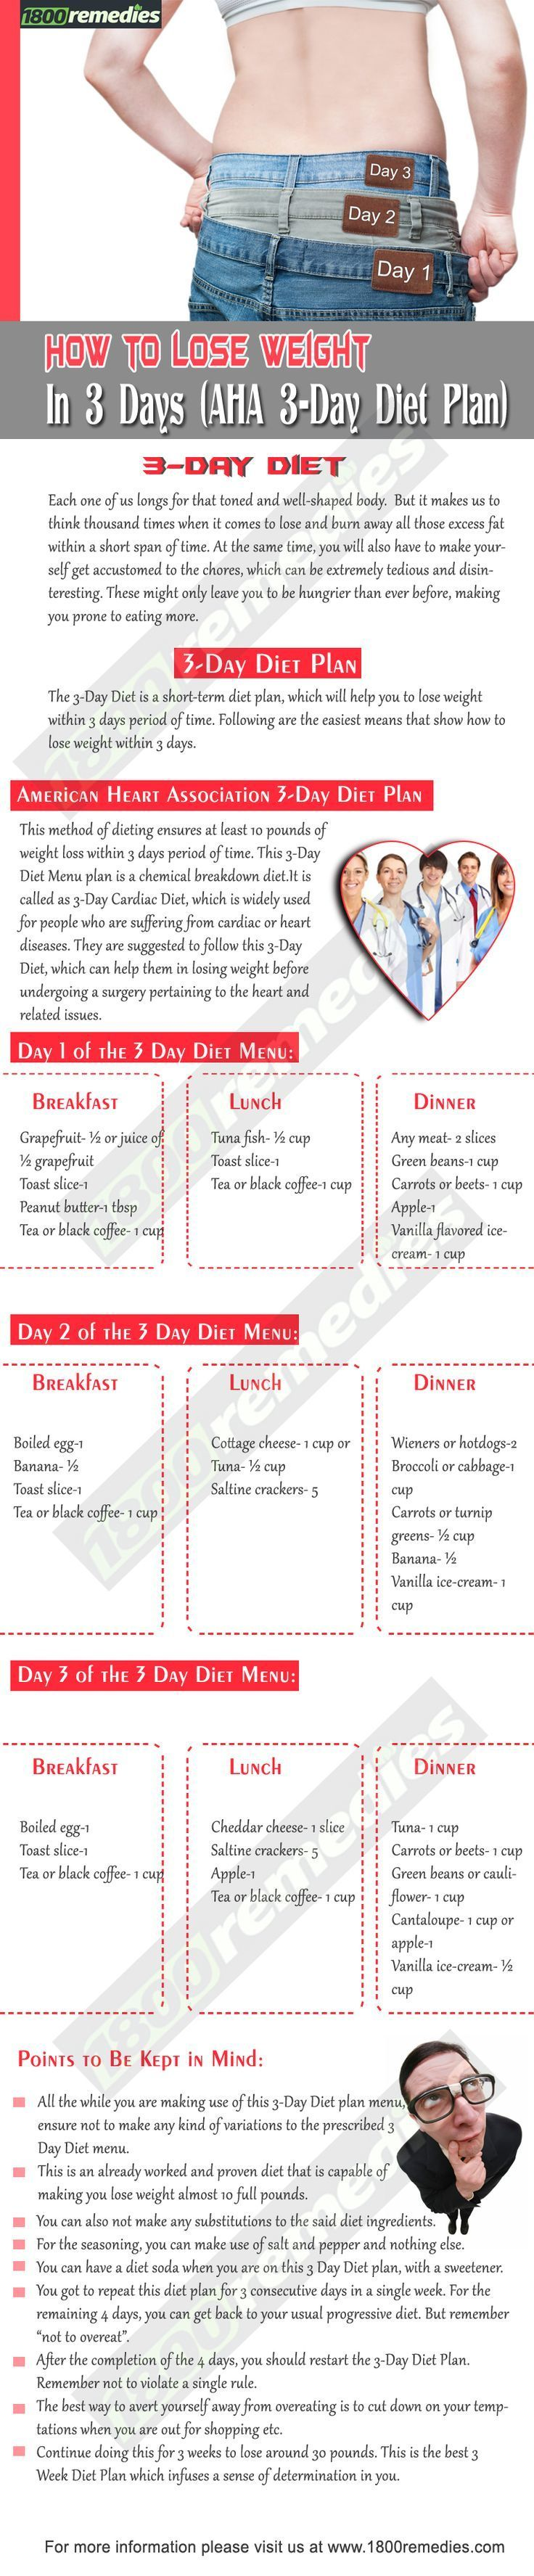 Best 25+ 10 Day Diet Ideas On Pinterest  Tips To Lose Weight, Skinny Rules  And 10 Day Cleanse